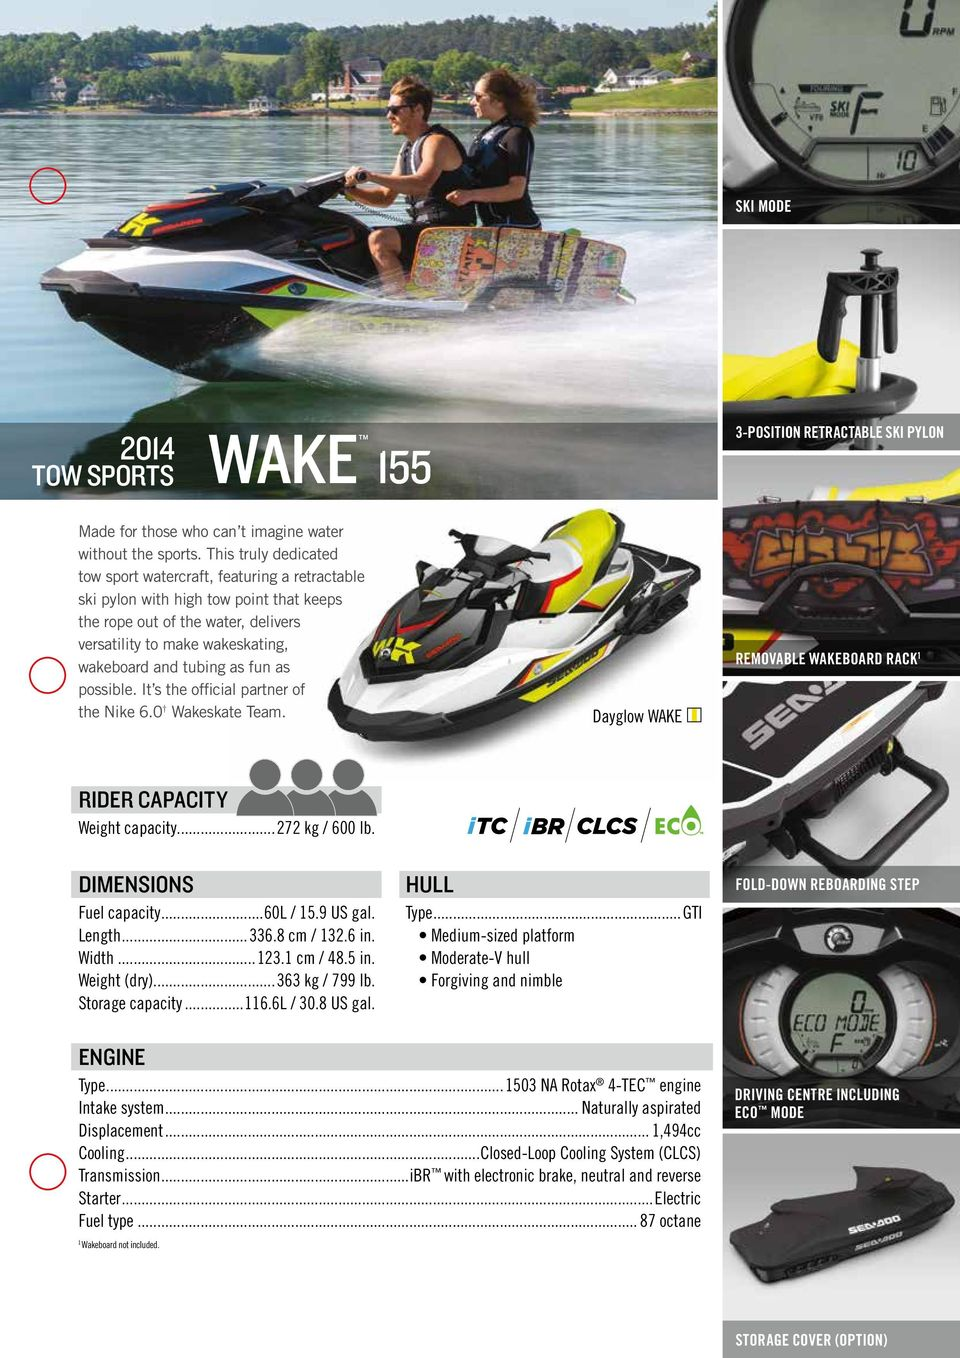 as fun as possible. It s the official partner of the Nike 6.0 Wakeskate Team. Dayglow WAKE Removable wakeboard rack 1 Rider Capacity Weight capacity...272 kg / 600 lb. Dimensions Fuel capacity.